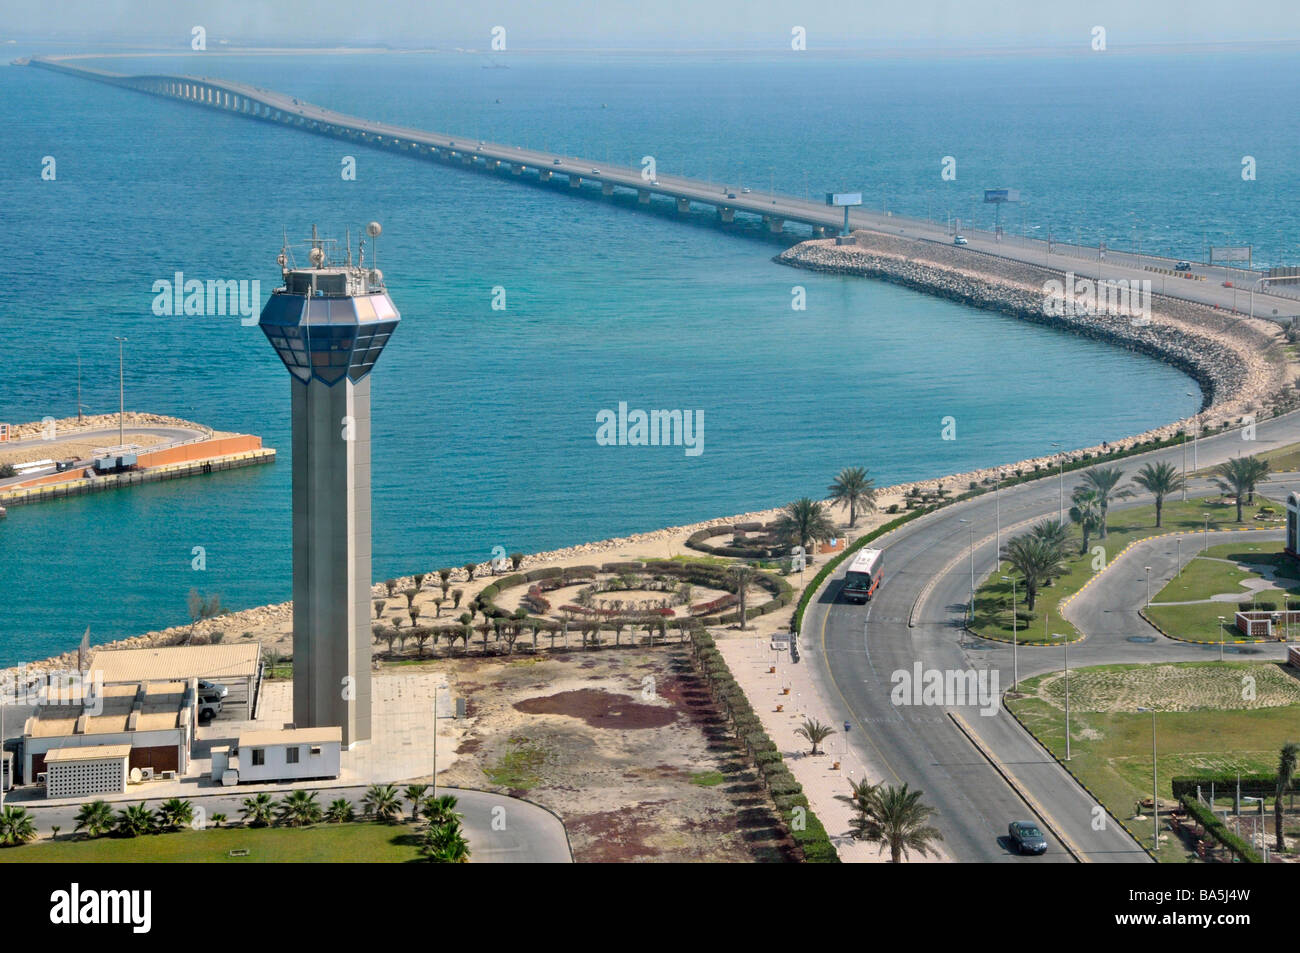 King Fahd Causeway linking Bahrain and Saudi Arabia in Persian Gulf view towards Bahrain from approx 'mid point' - Stock Image